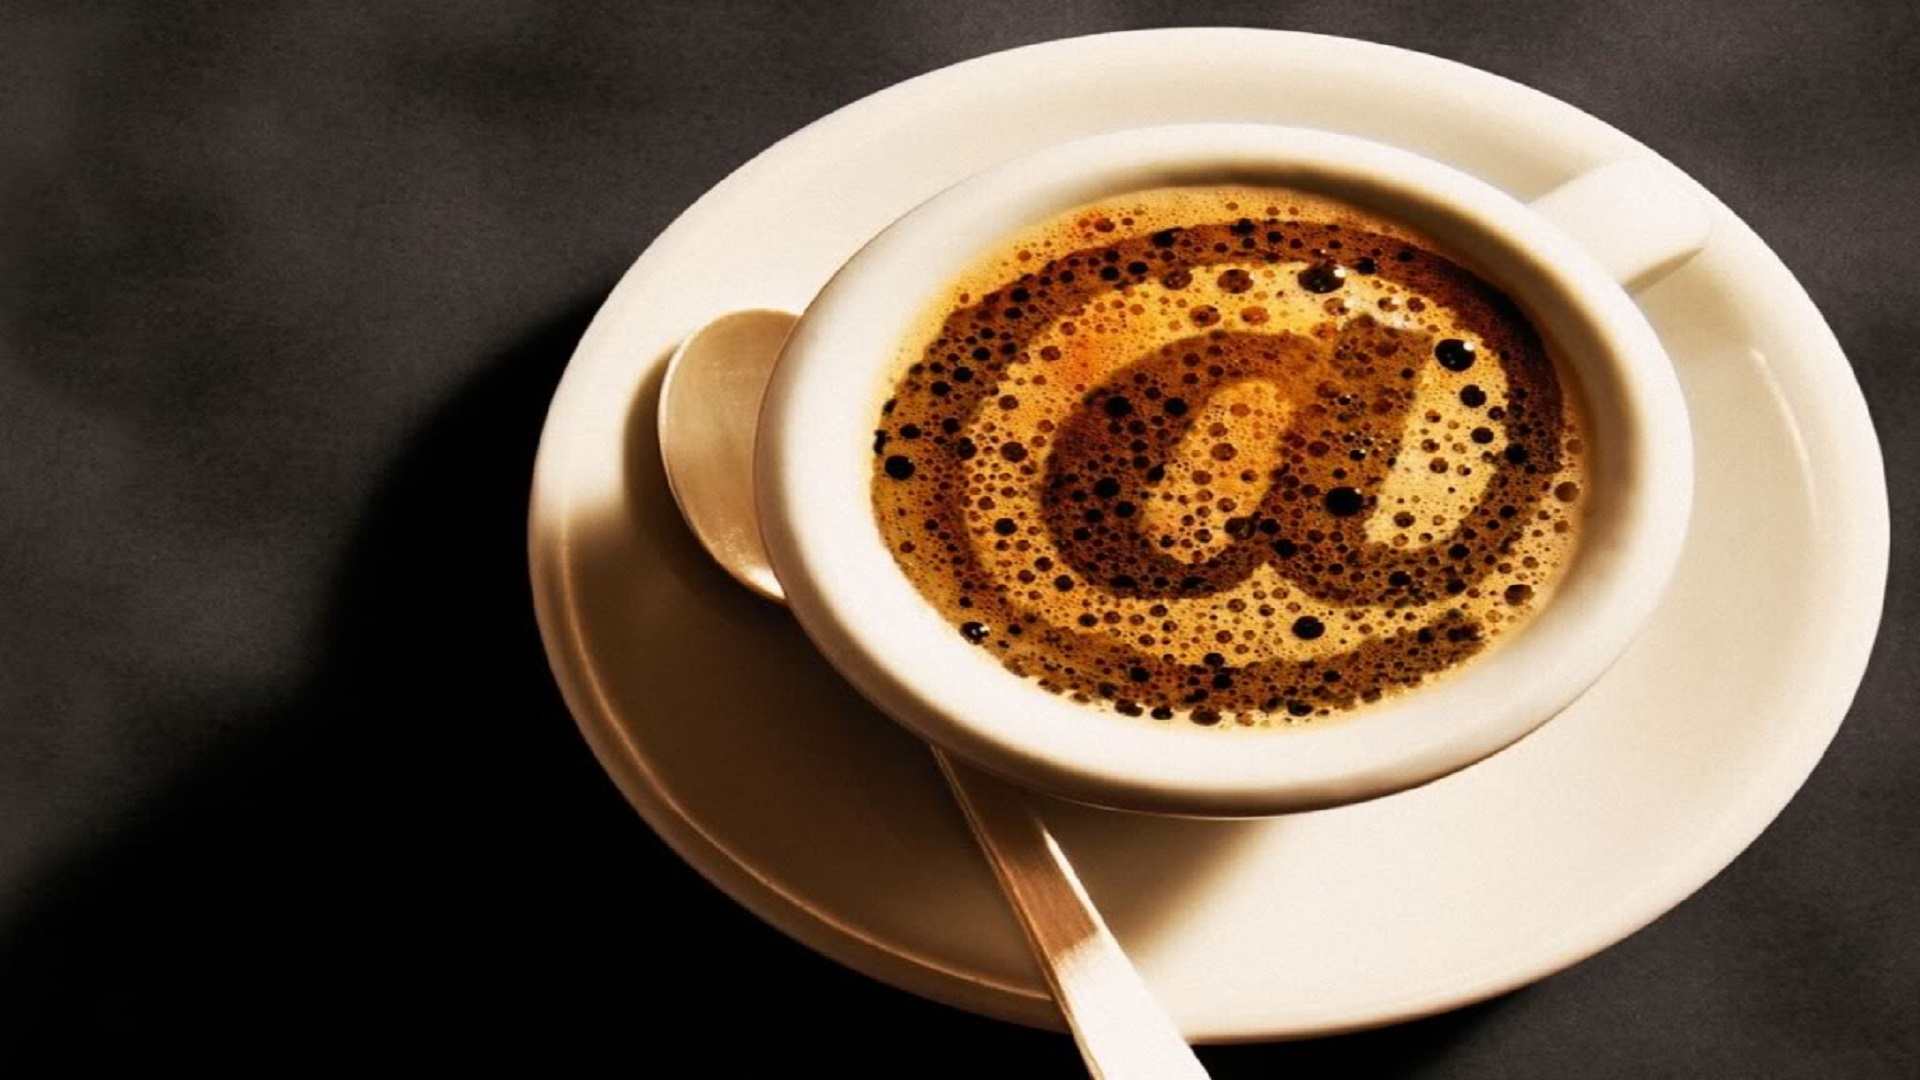 Free Hd 3d Wallpapers For Desktop Coffee Cup Design Hd Wallpapers Free For Desktop Hd